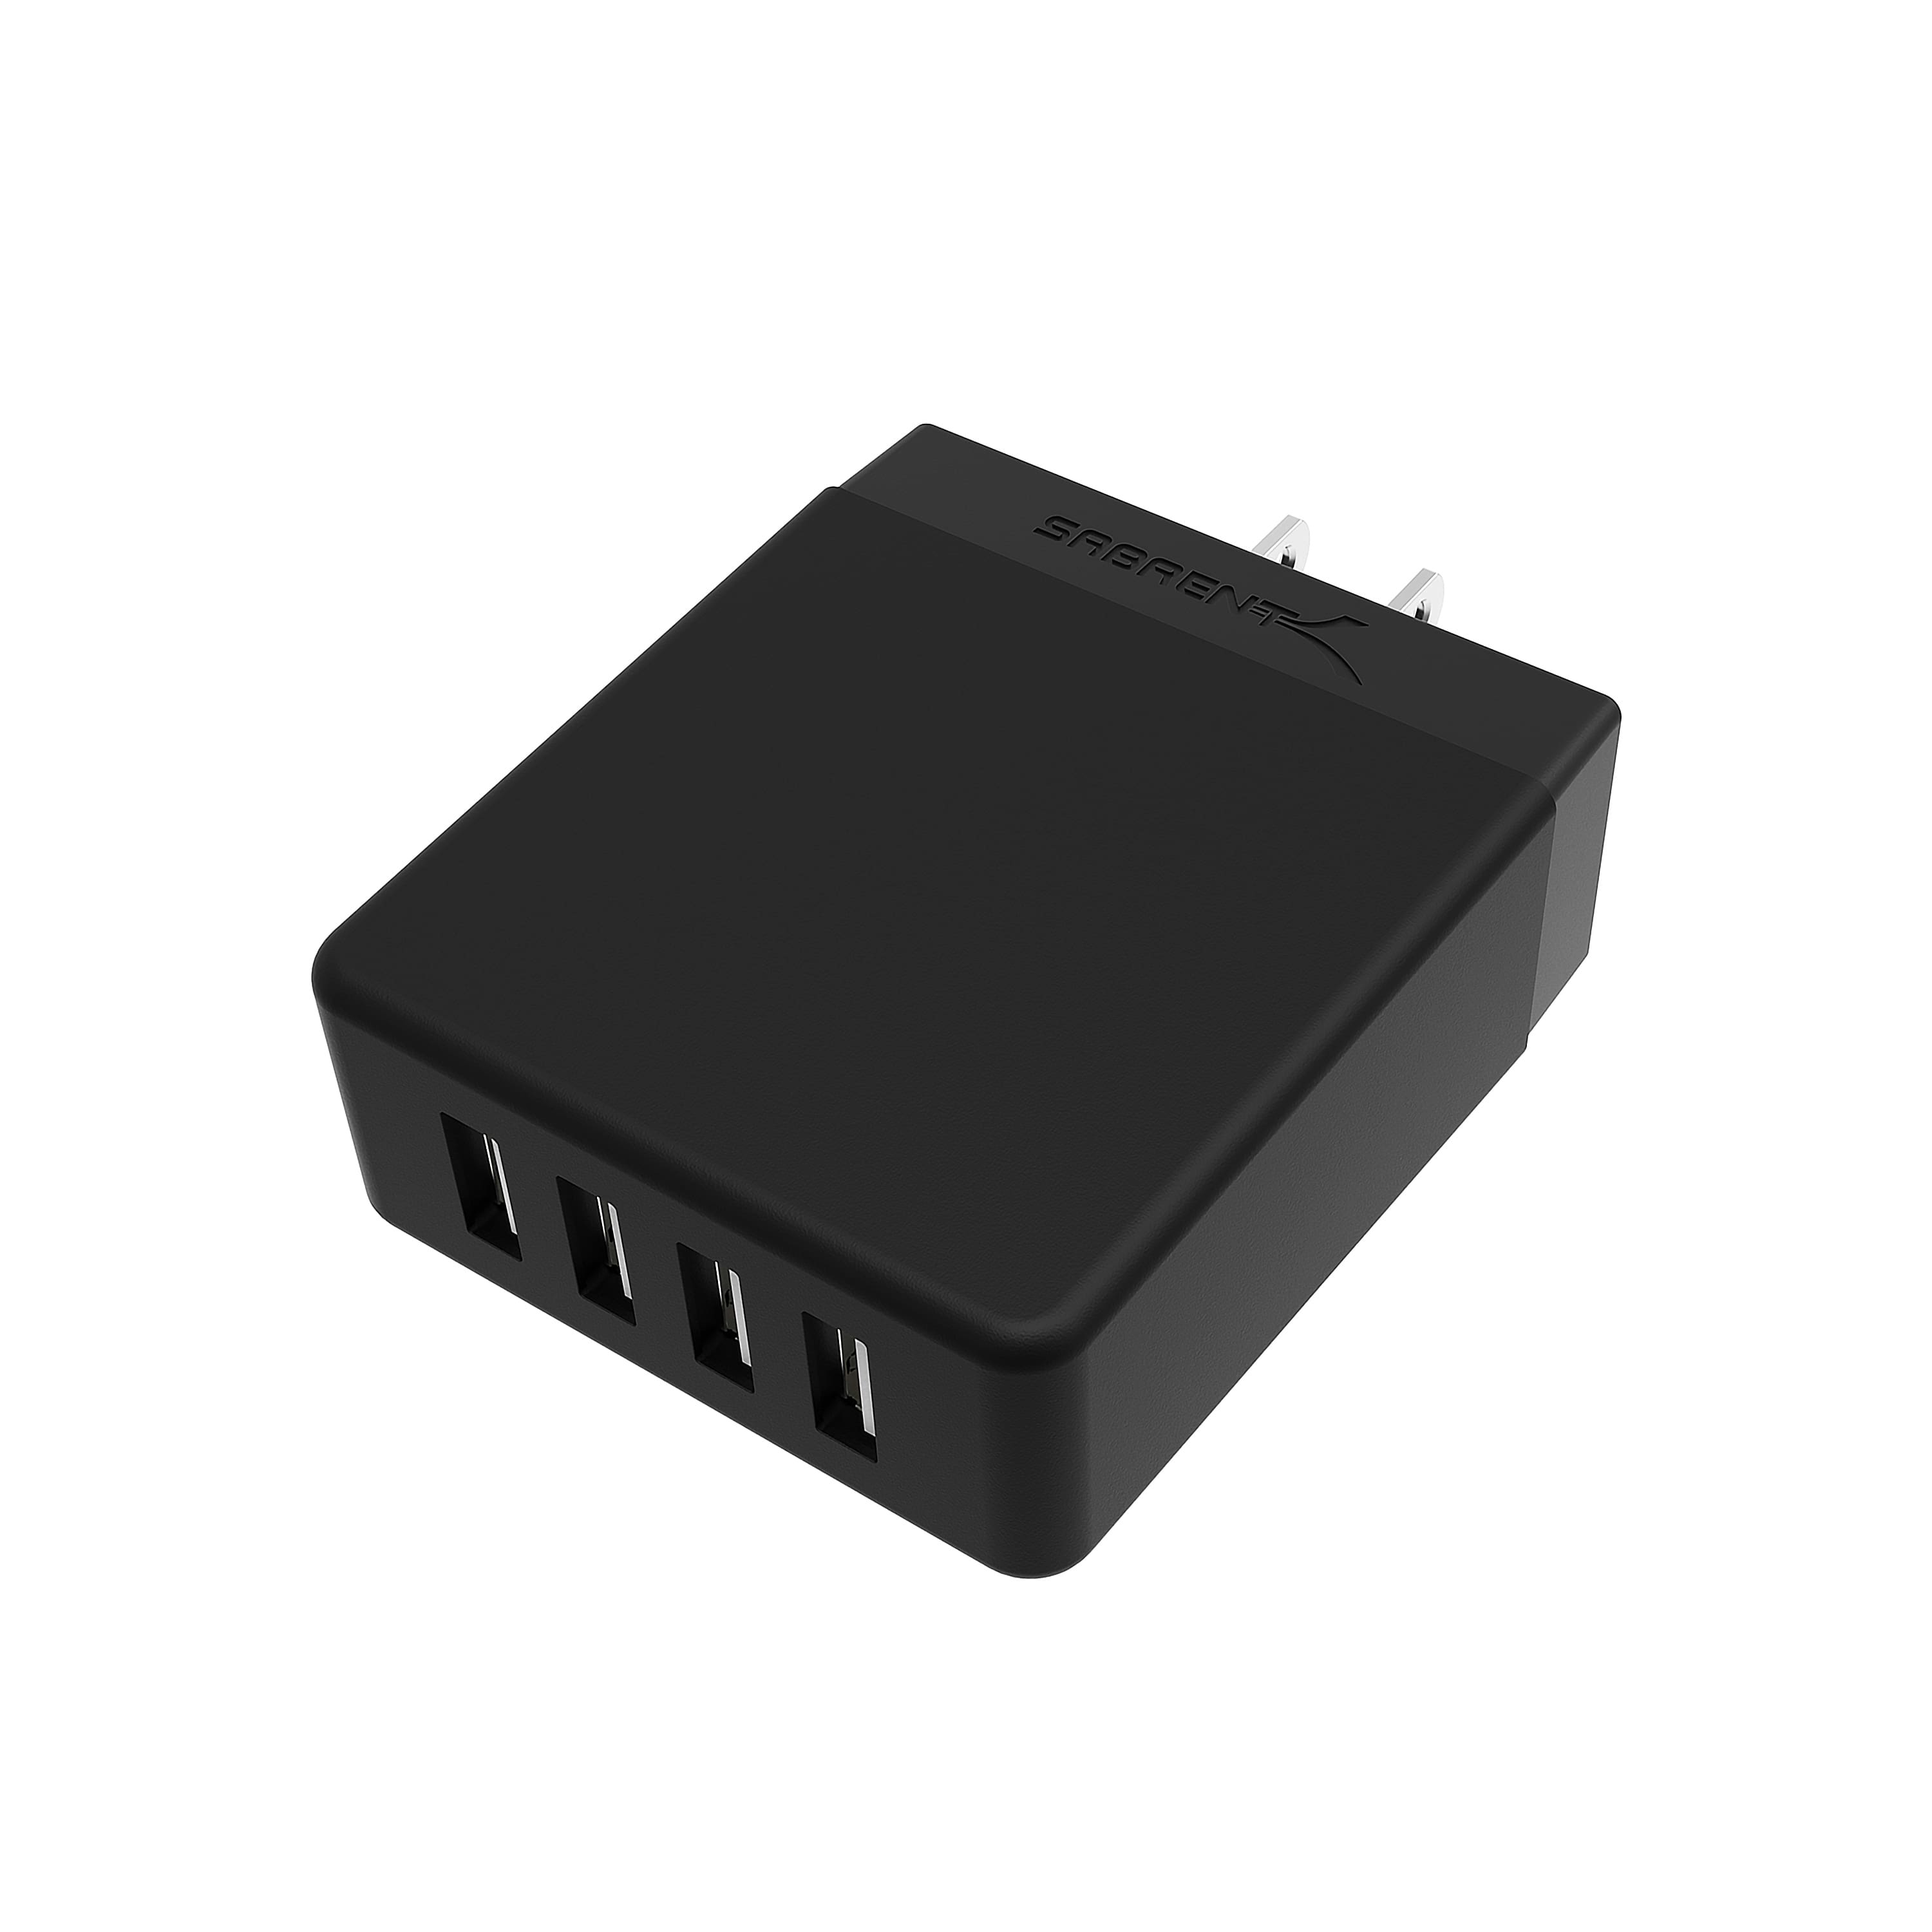 Sabrent USB Chargers: 5 Port 50w $10, or 4 port 40w $9 + free shipping